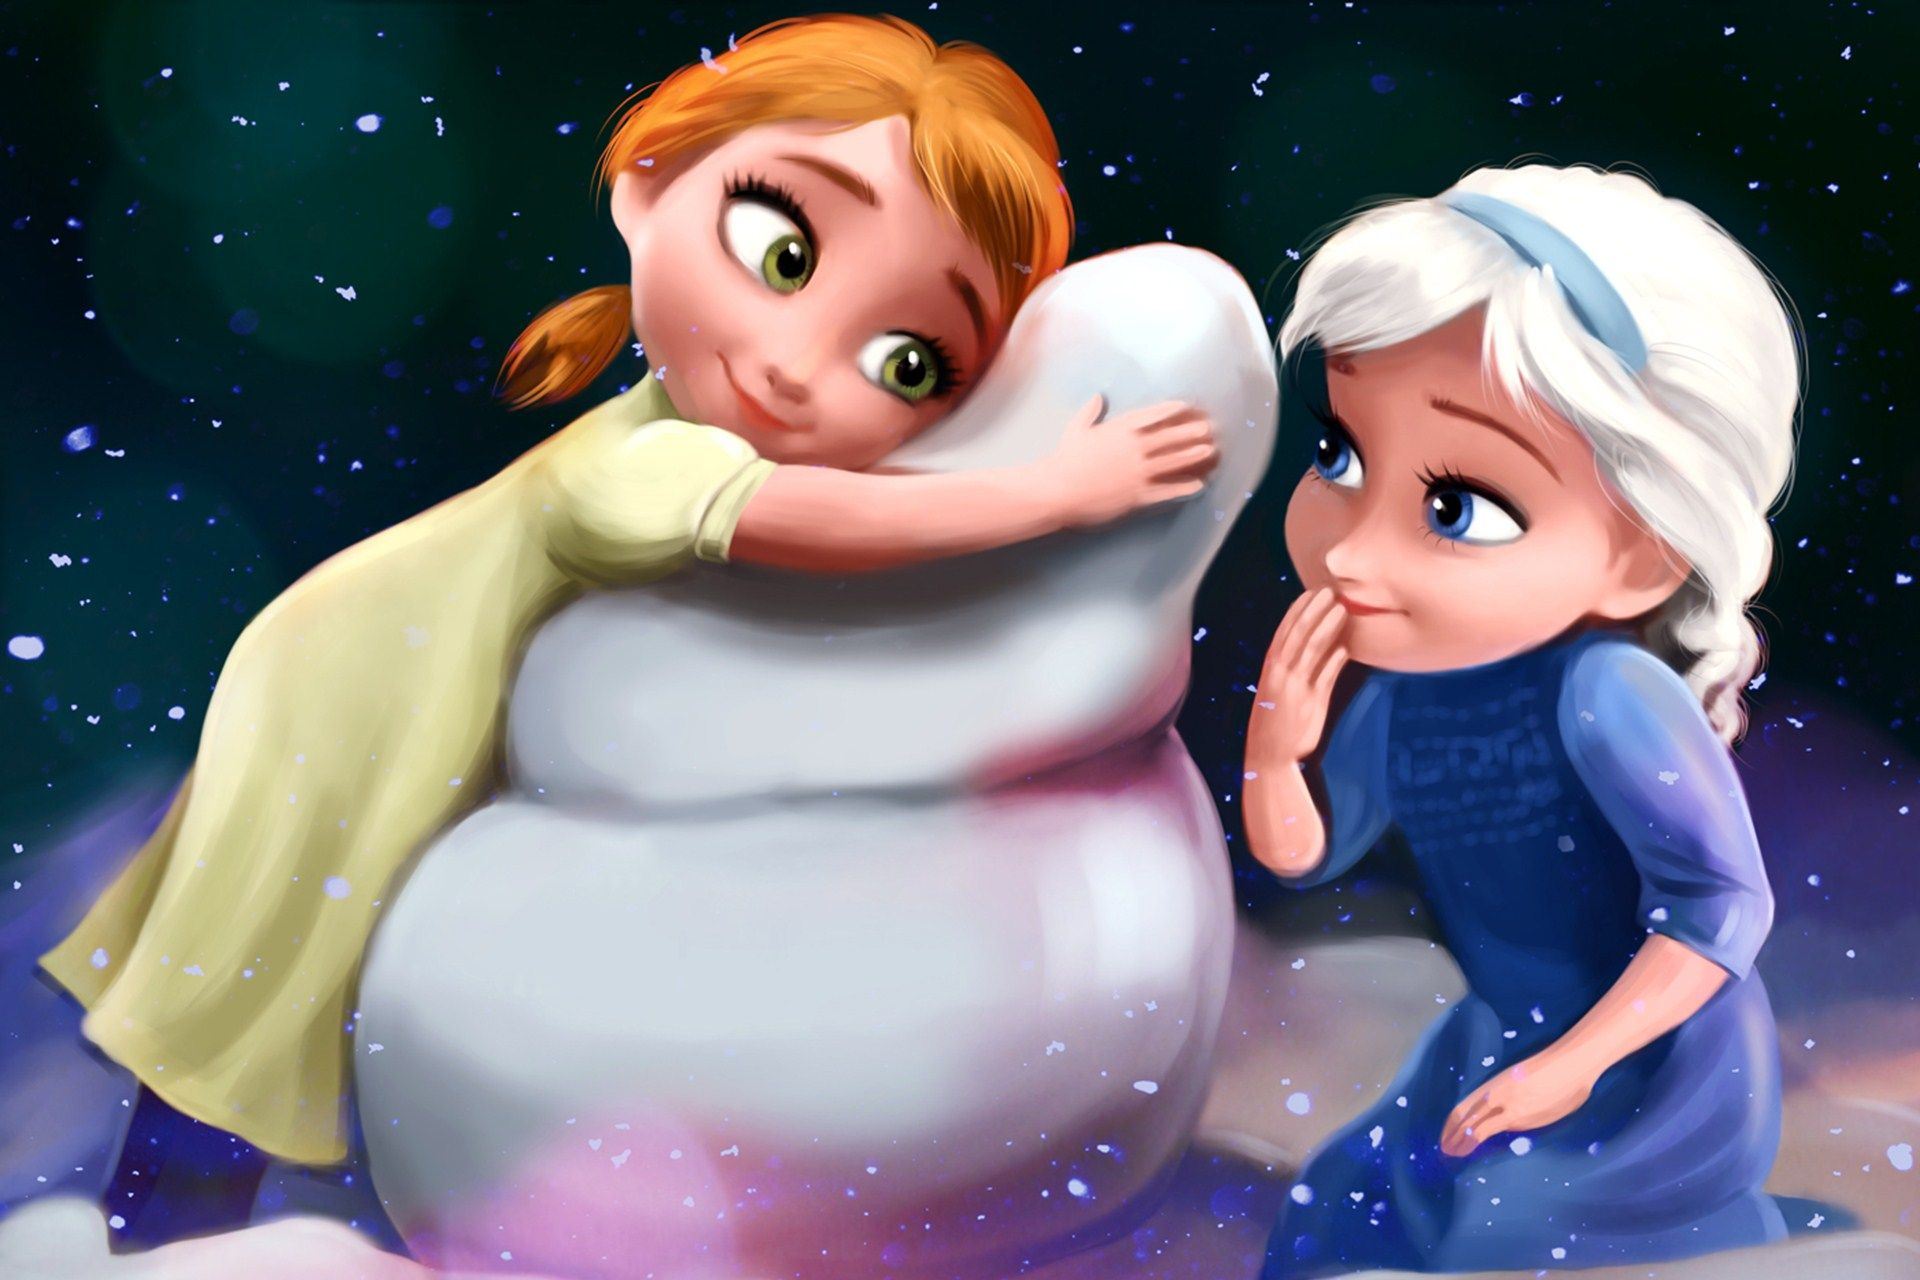 Disney Frozen Anna And Elsa As Kids Hd Wallpaper Frozen